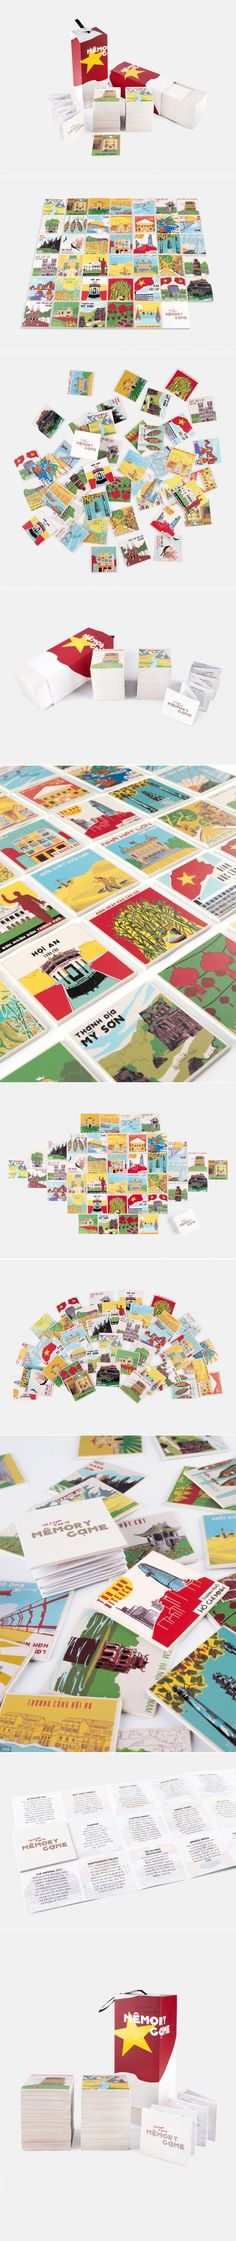 Get To Know The Sights of Vietnam With This Colorful Memory Game — The Dieline | Packaging & Branding Design & Innovation News.